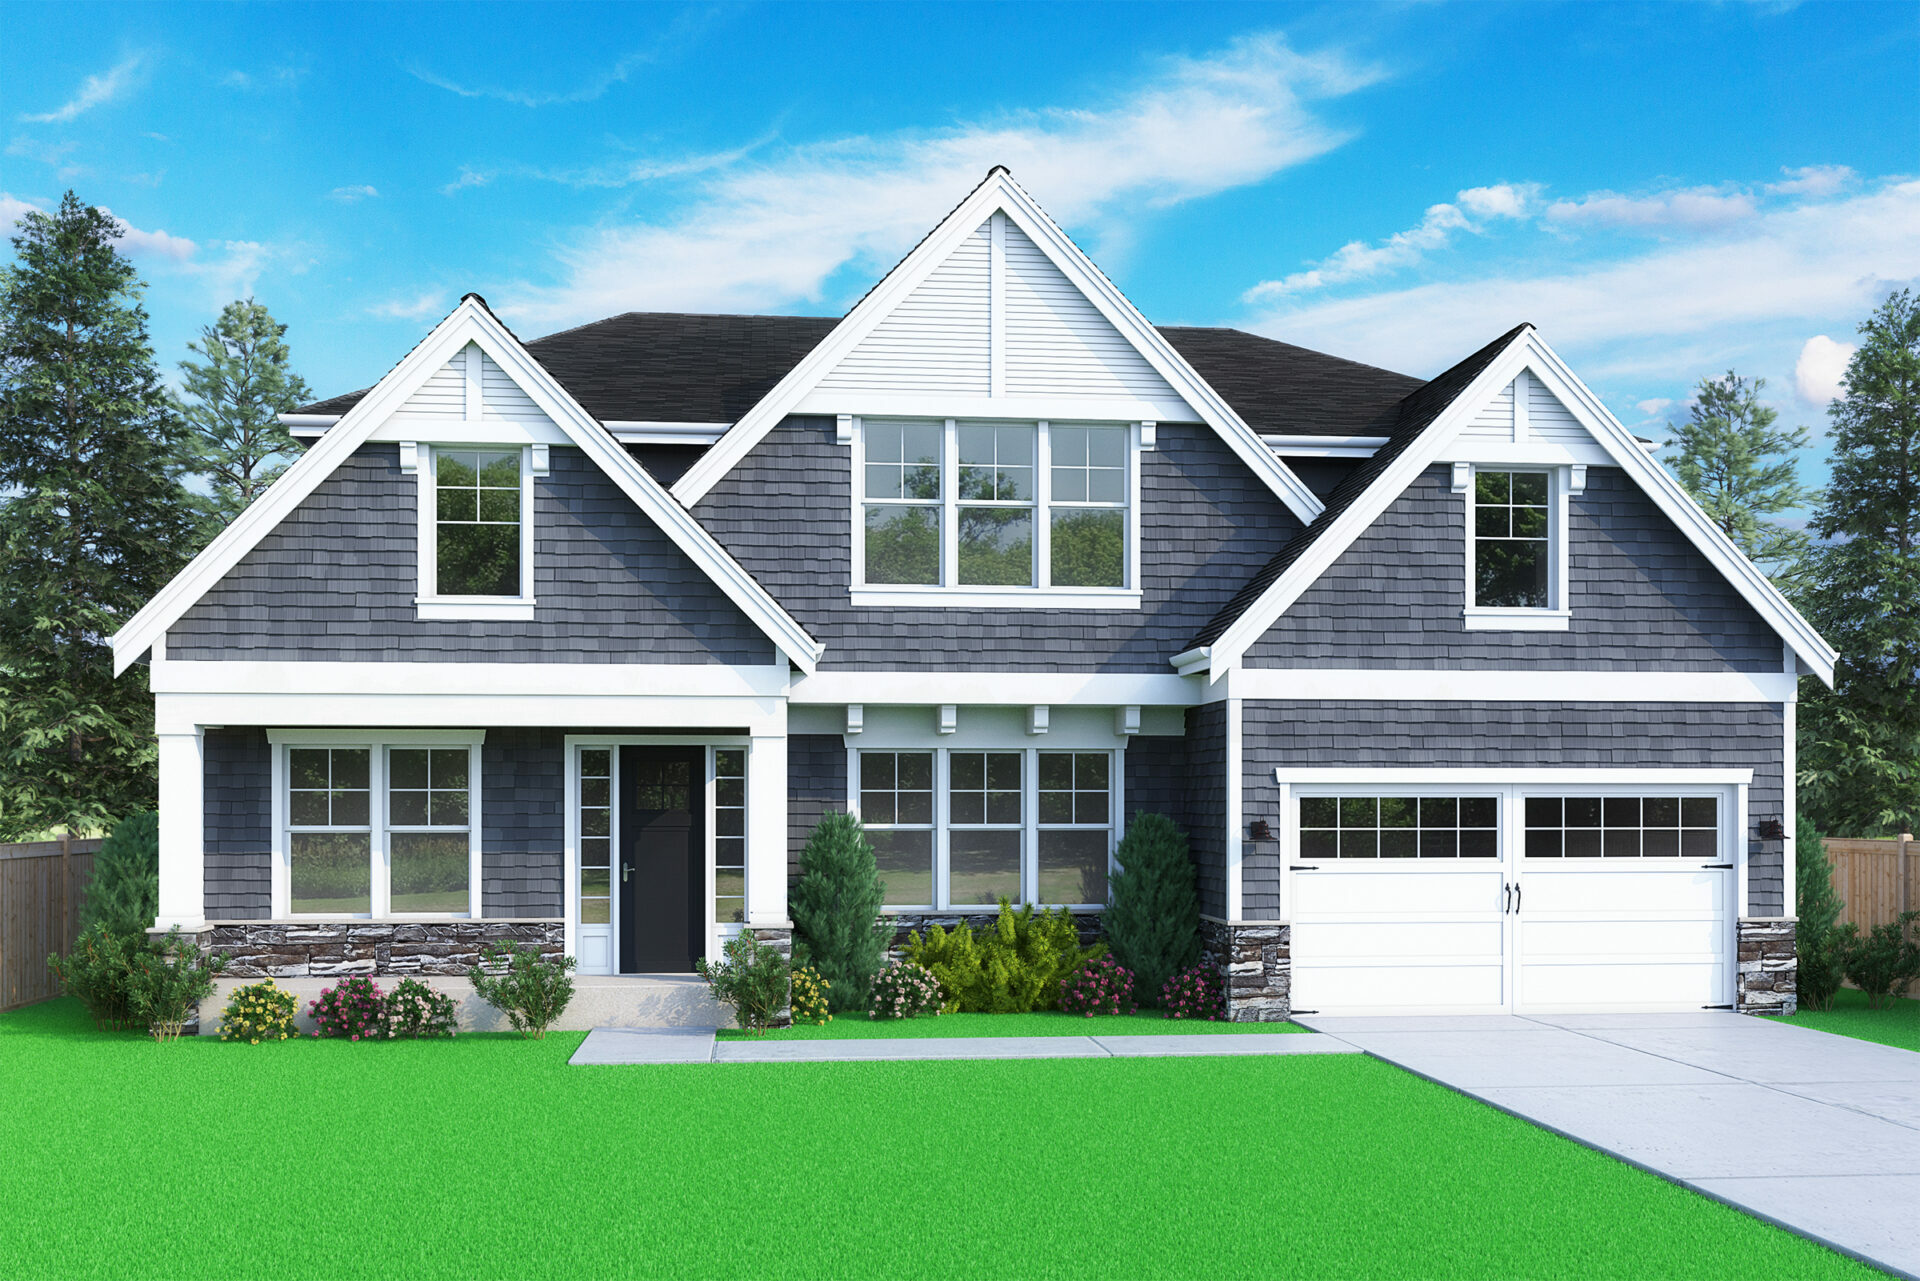 View our new luxury home construction on 3738 164th Pl SE, in Bellevue, WA from MN Custom Homes